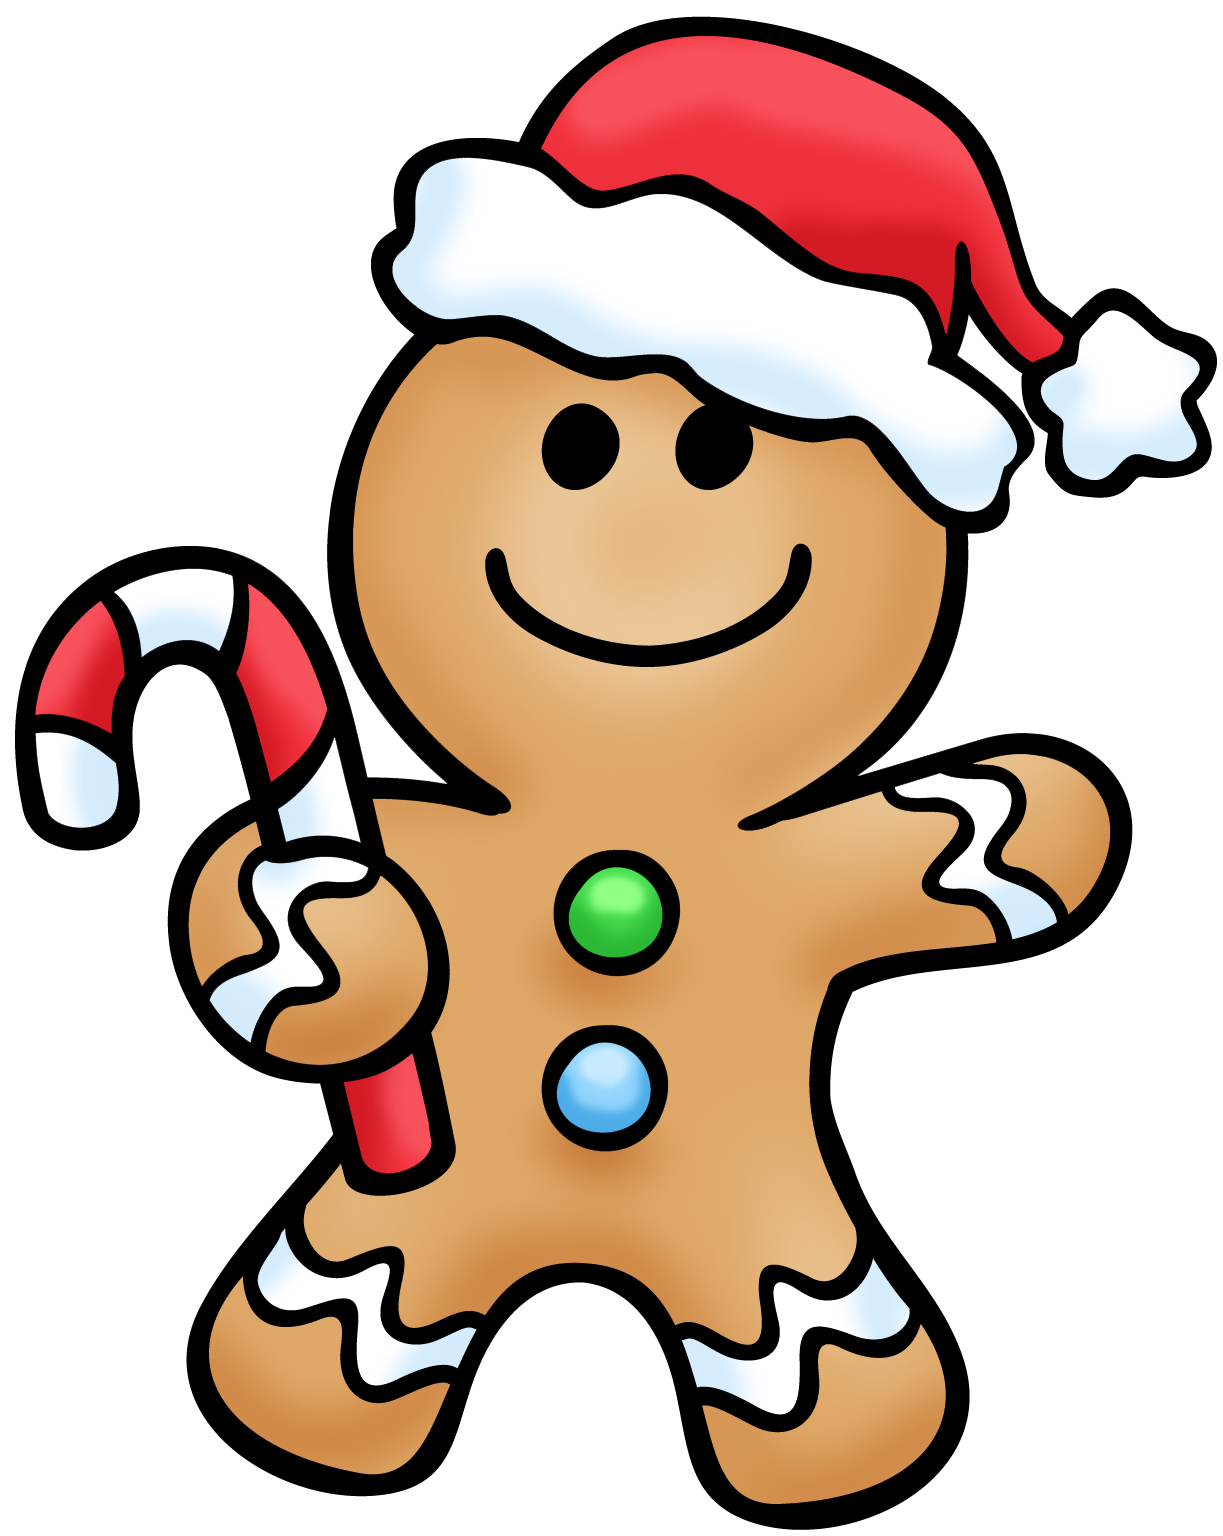 Gingerbread man clip art images illustrations photos.